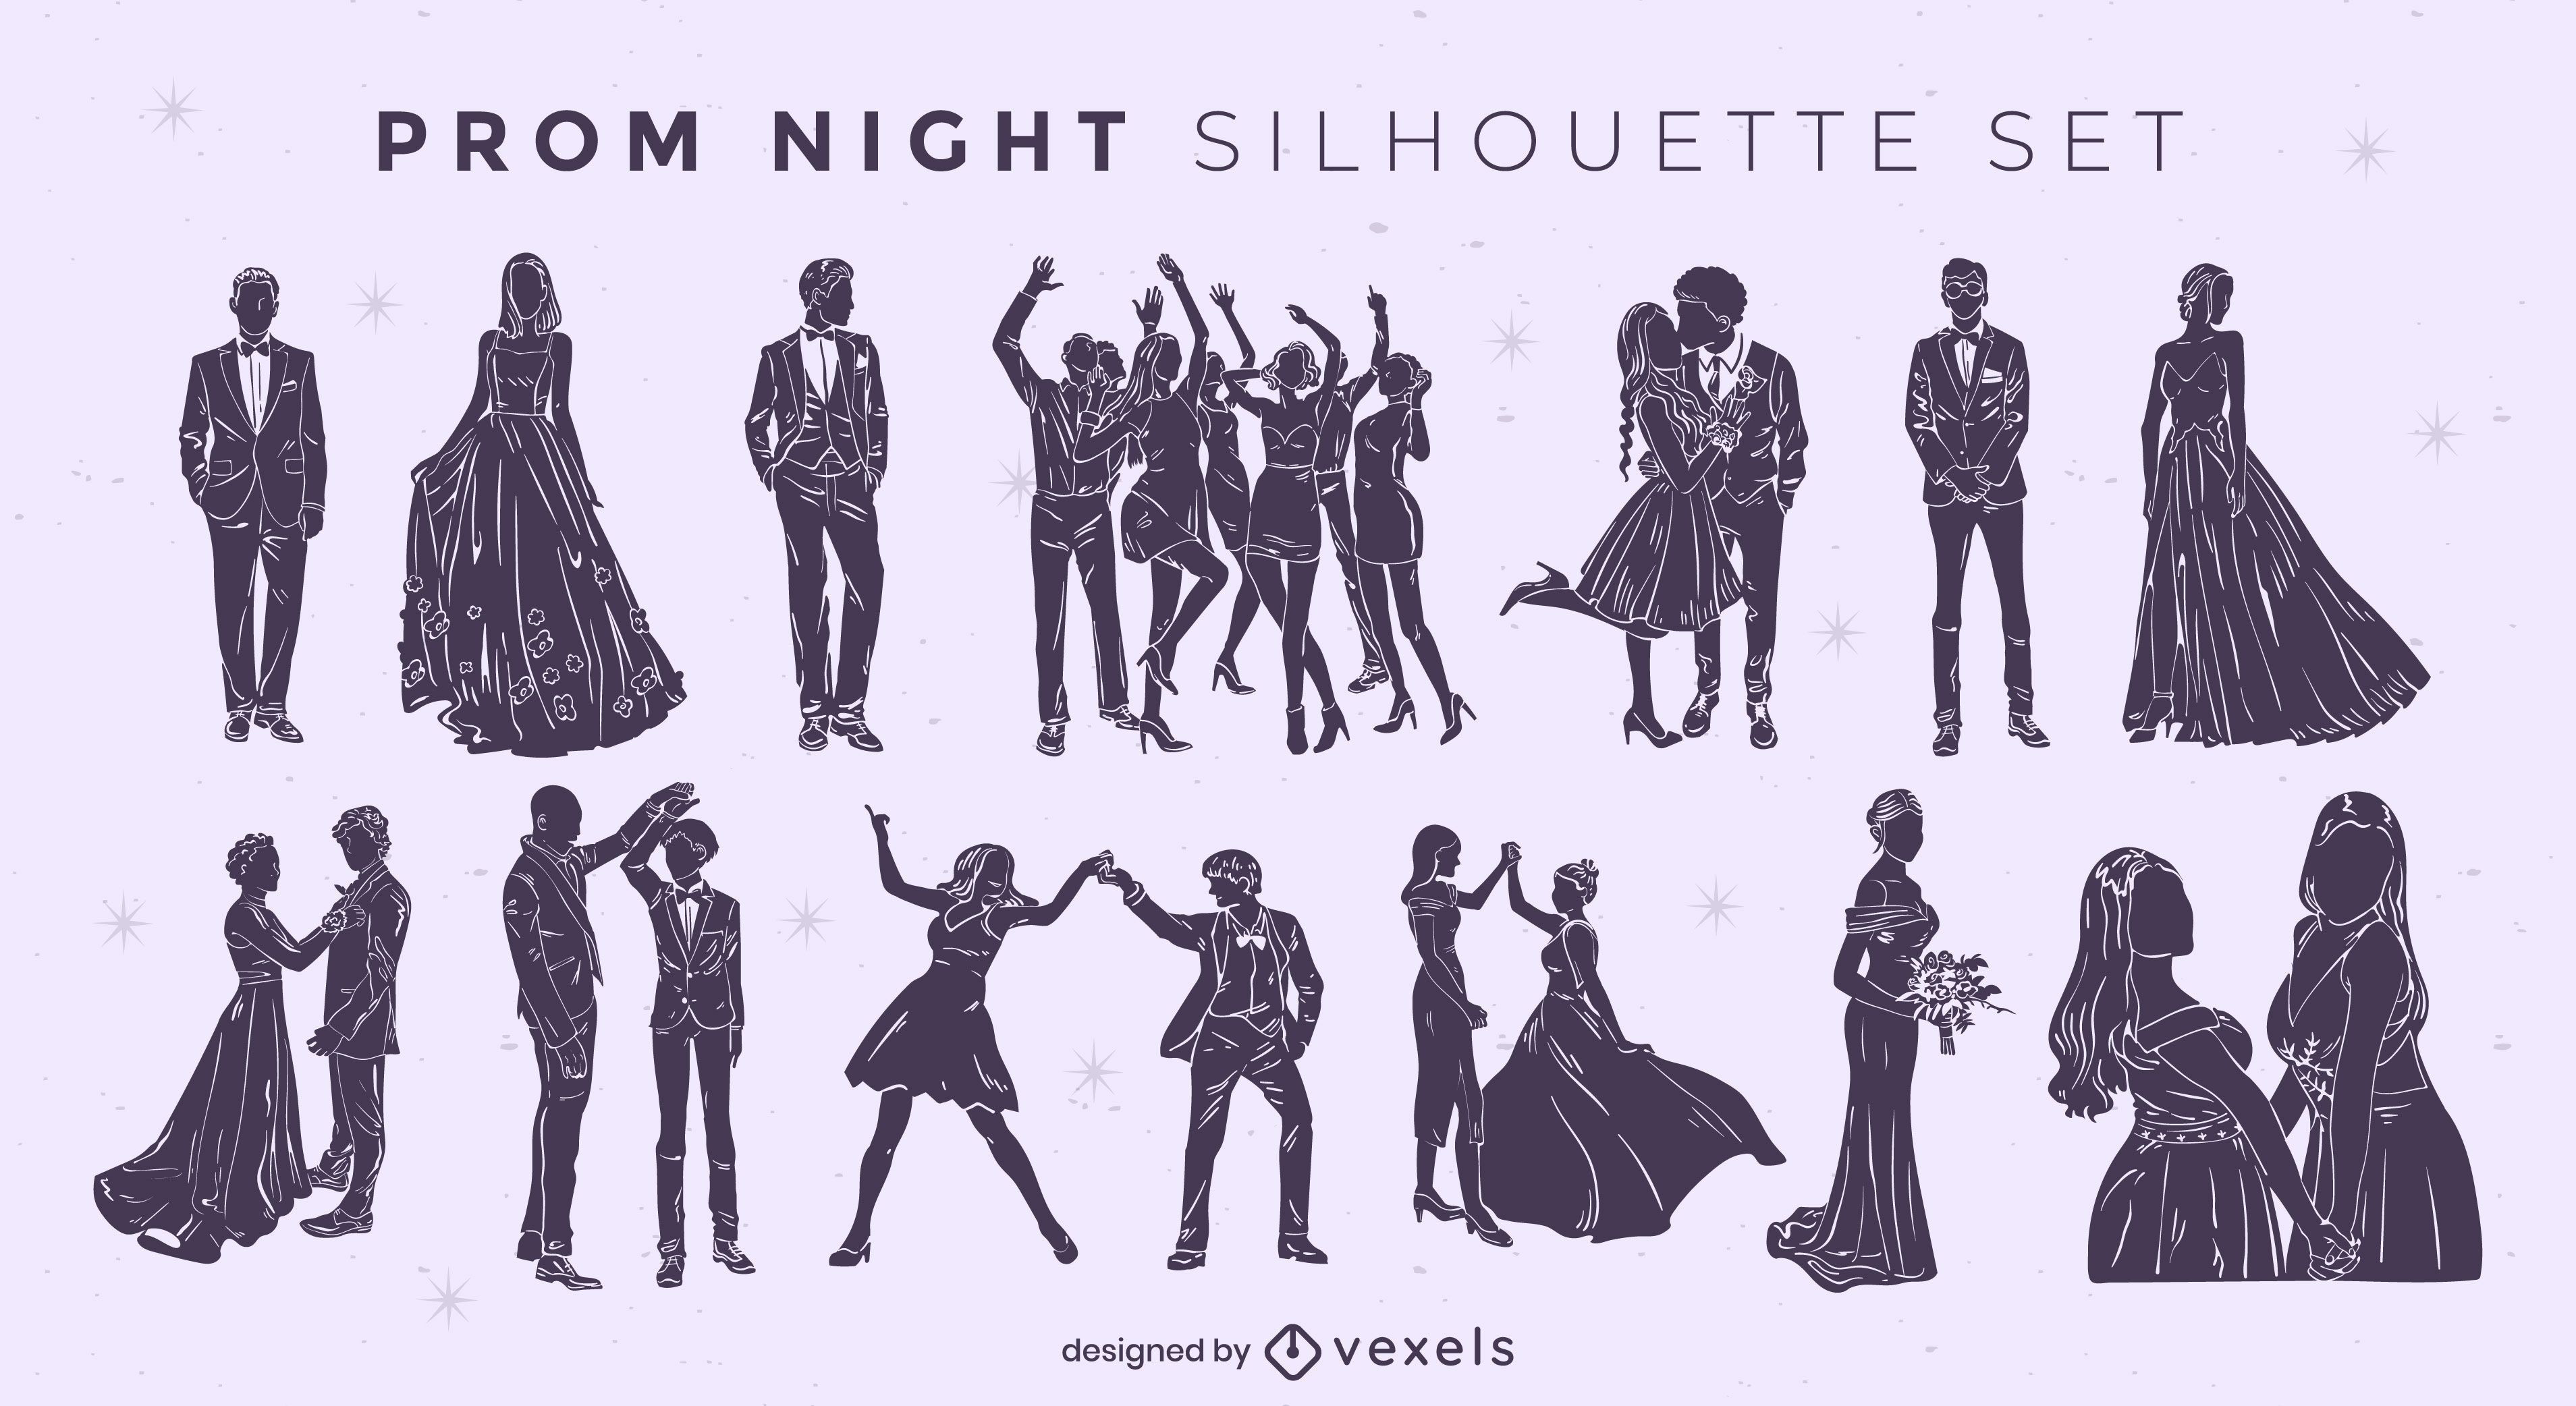 Prom night silhouettes cut out set